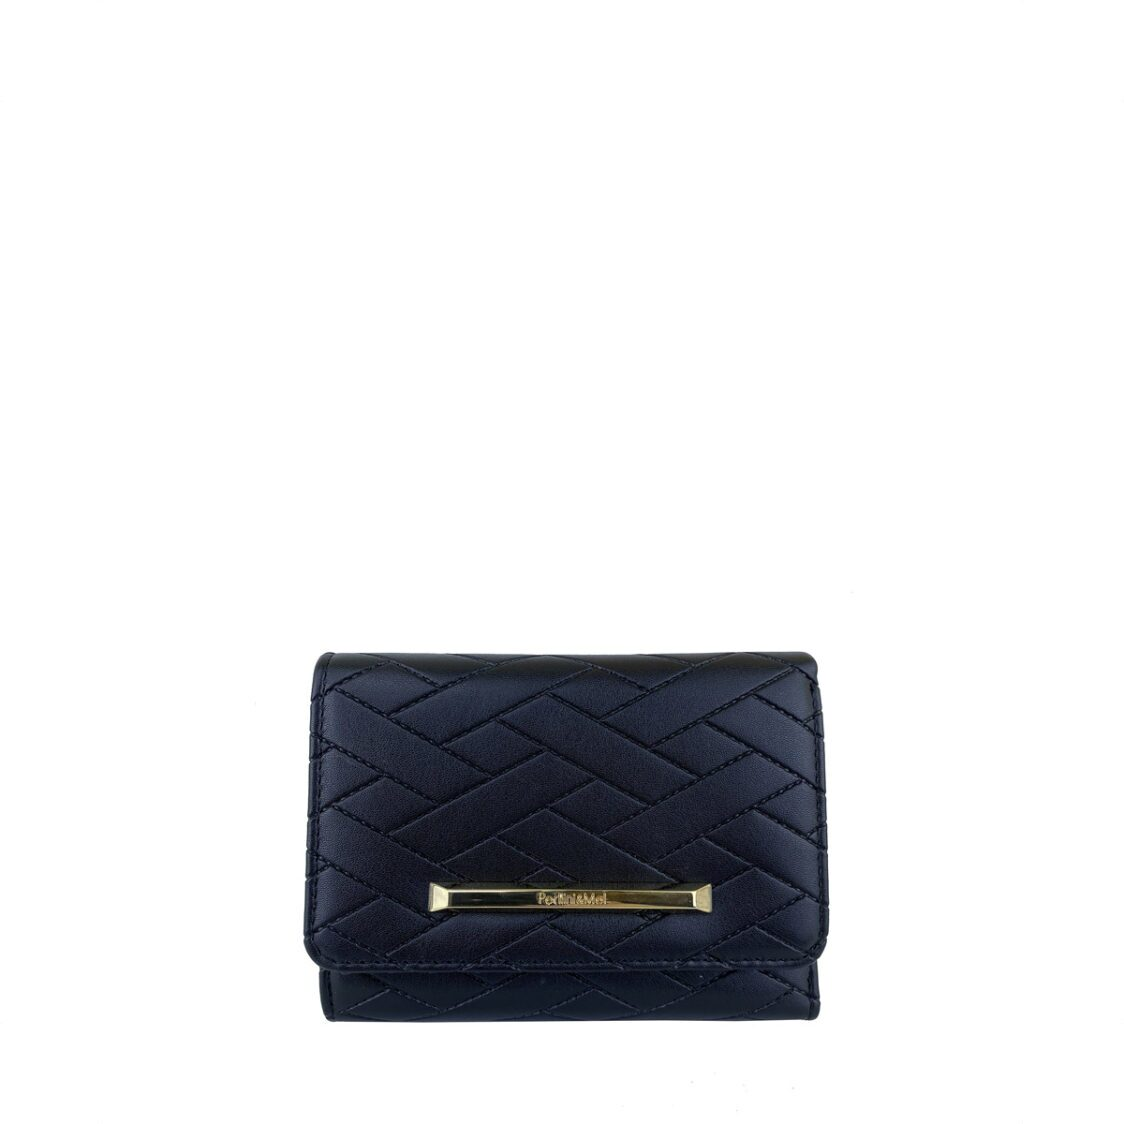 PerlliniMel Weave Embossed Mid-Size Wallet with Zip Around Compartment X Black